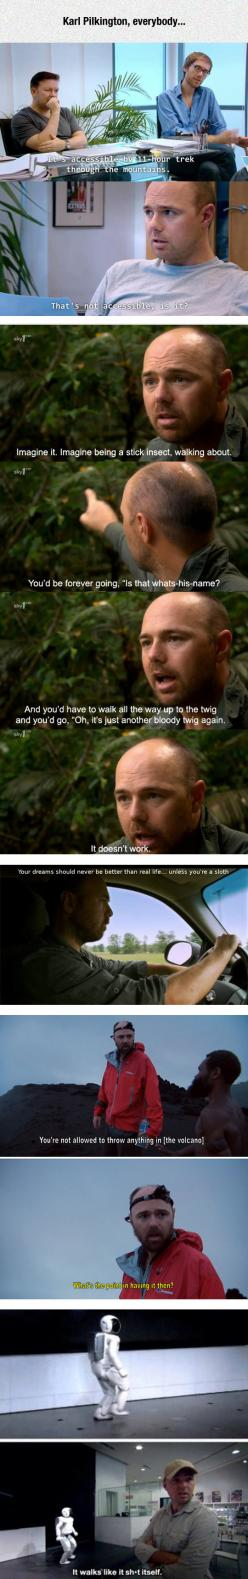 Karl Pilkington Is A Funny Guy